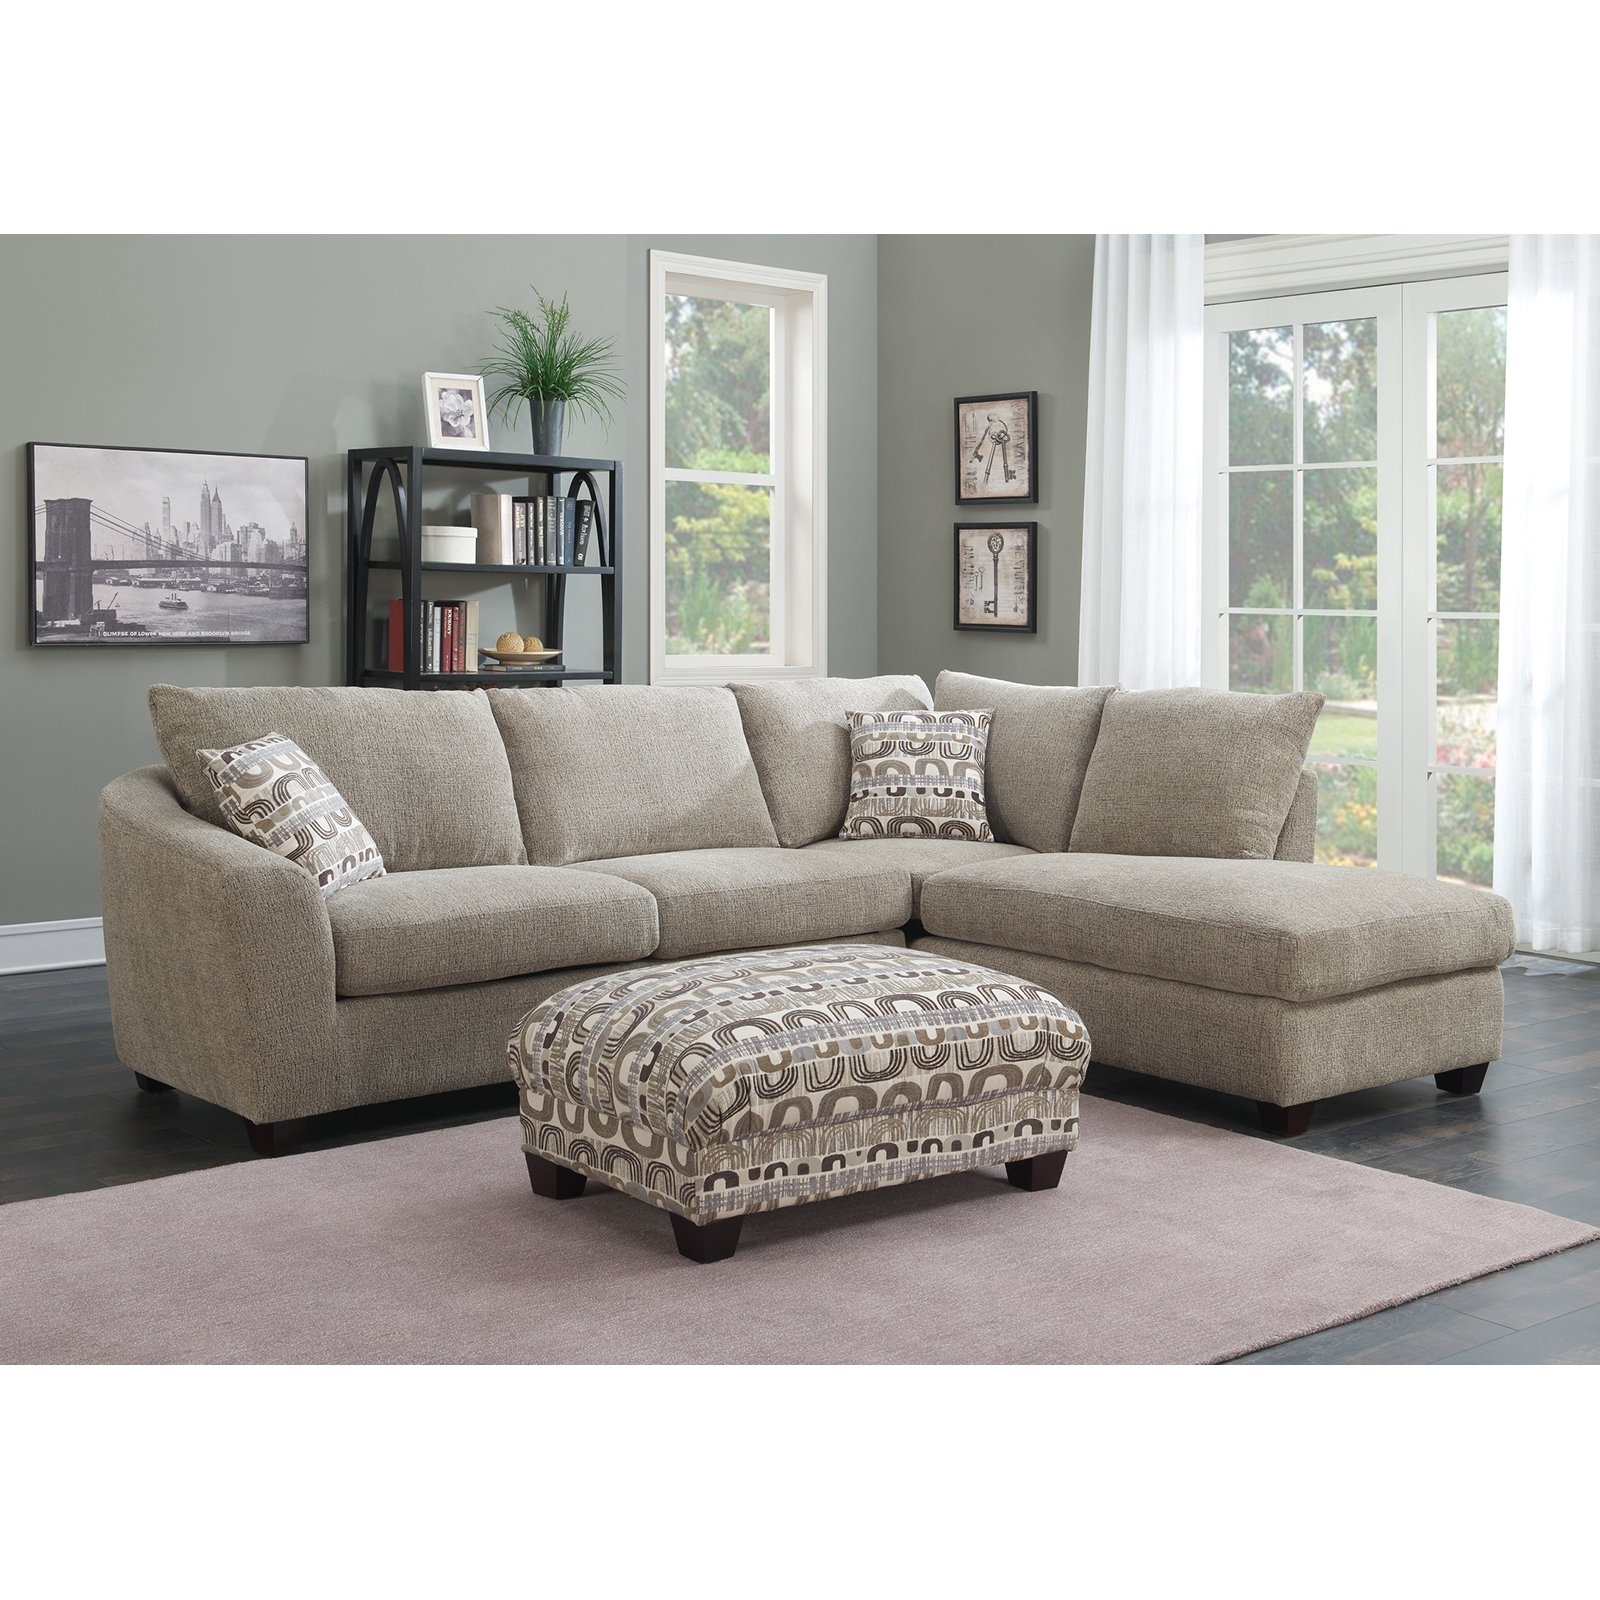 Emerald Home Urbana Piece Sectional Sofa With Chaise Couch Double with regard to Delano 2 Piece Sectionals With Raf Oversized Chaise (Image 19 of 30)